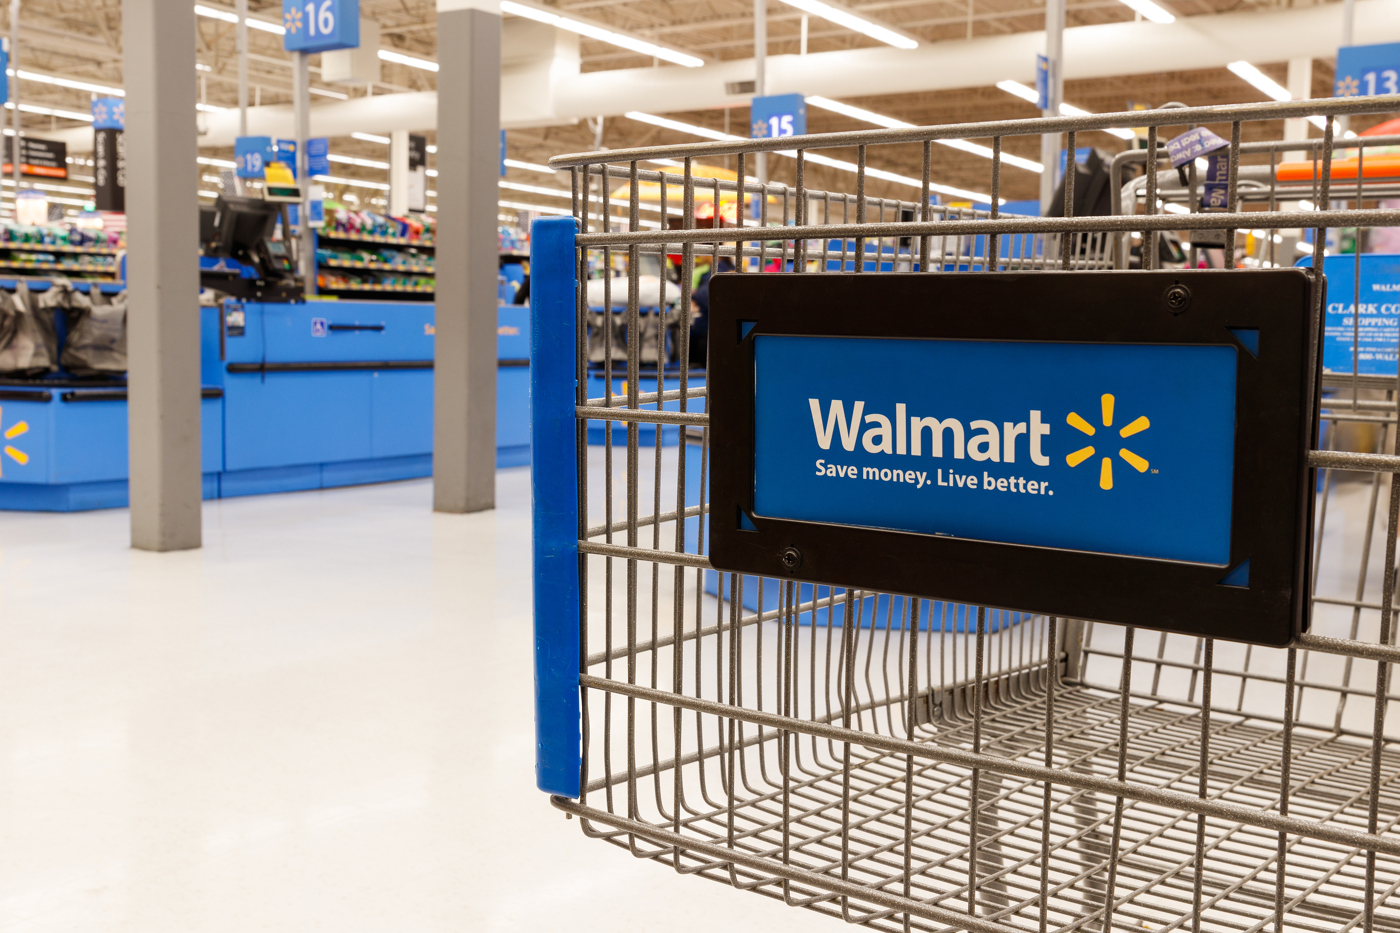 Walmart stock, WMT stock news and analysis